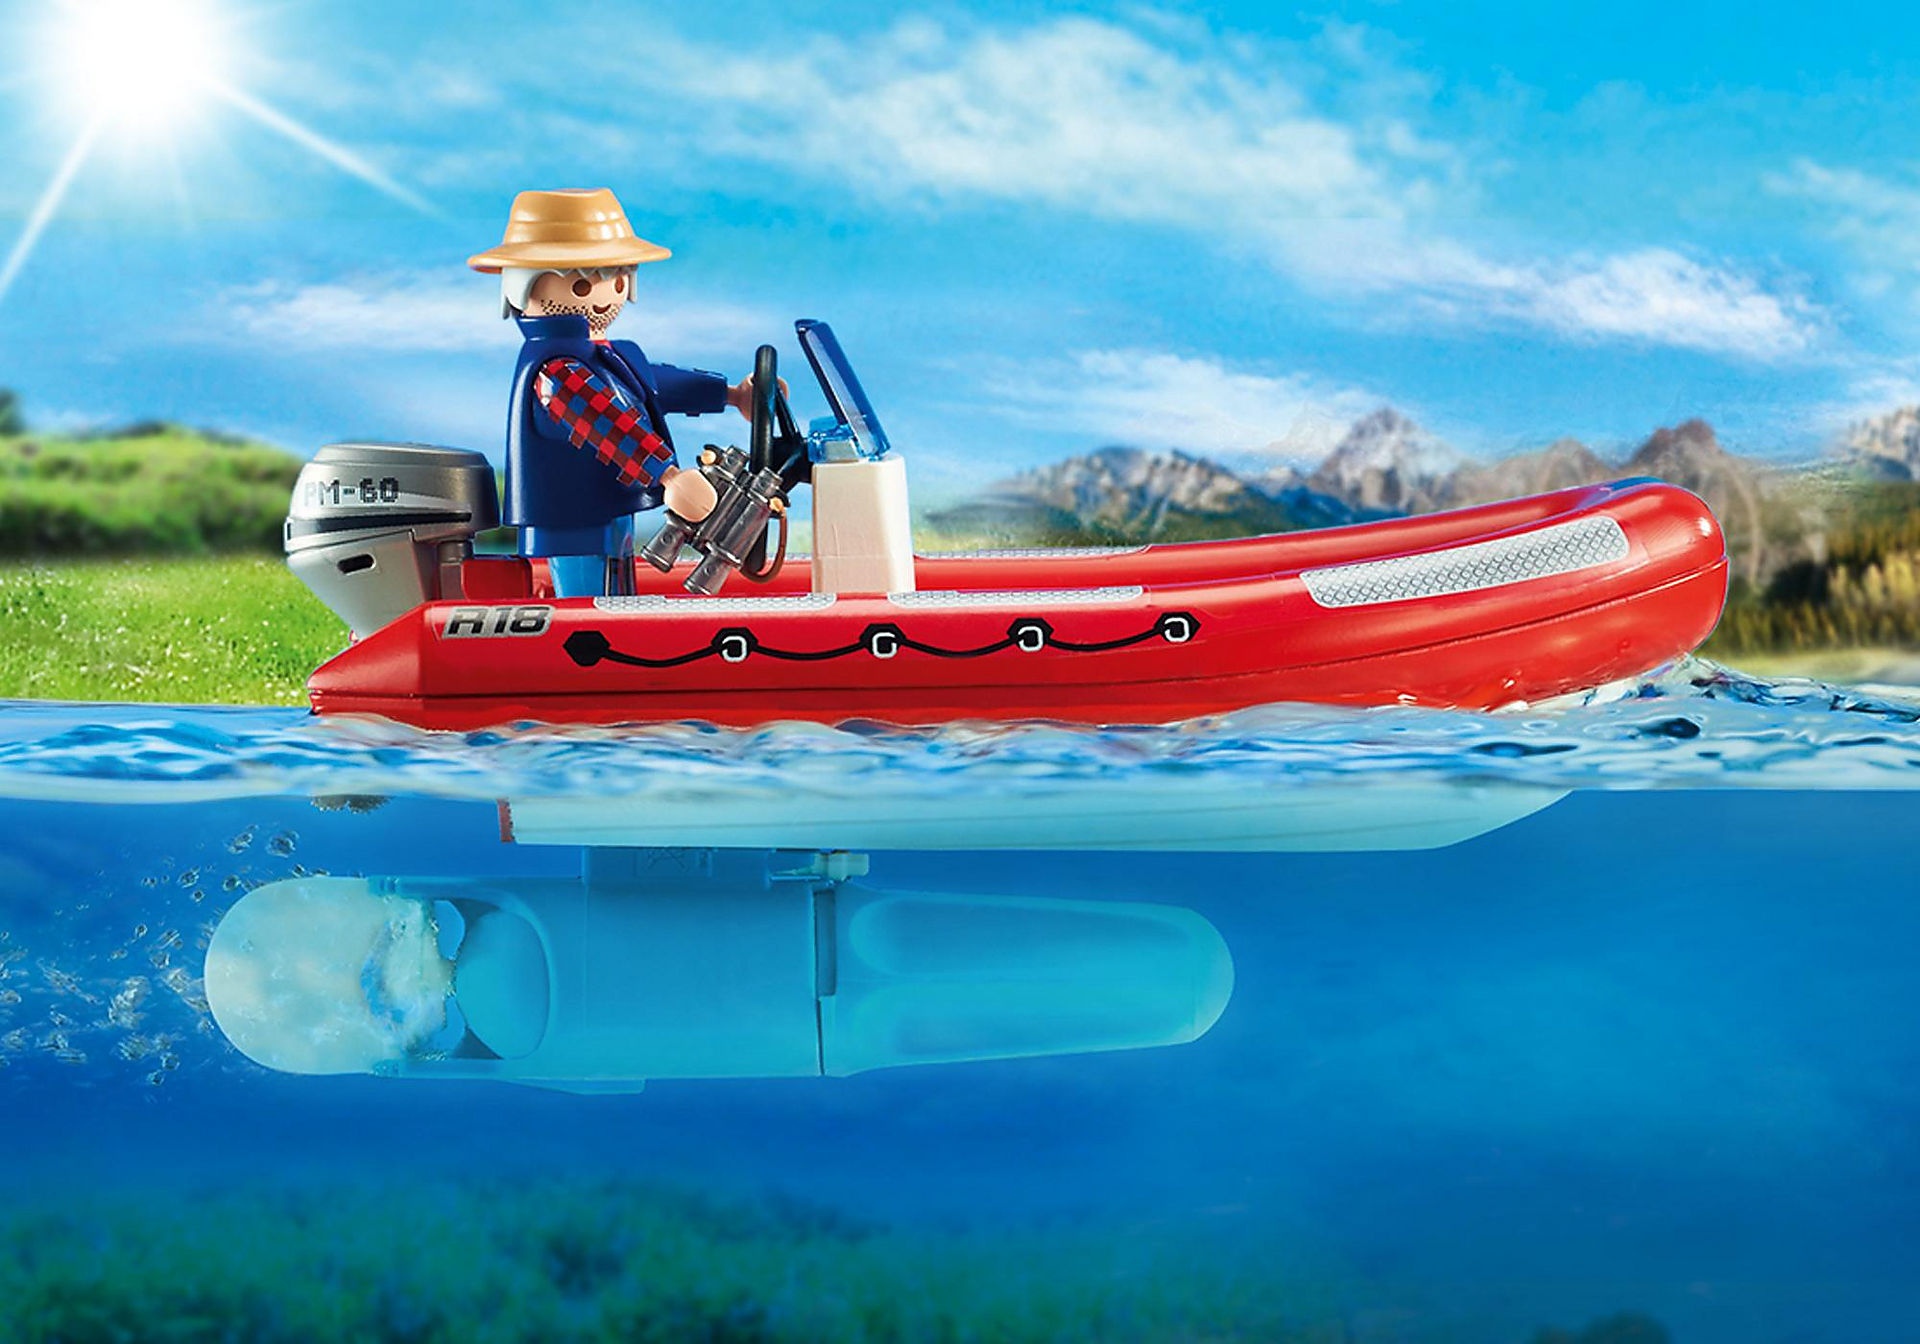 http://media.playmobil.com/i/playmobil/5559_product_extra1/Schlauchboot mit Wilderern